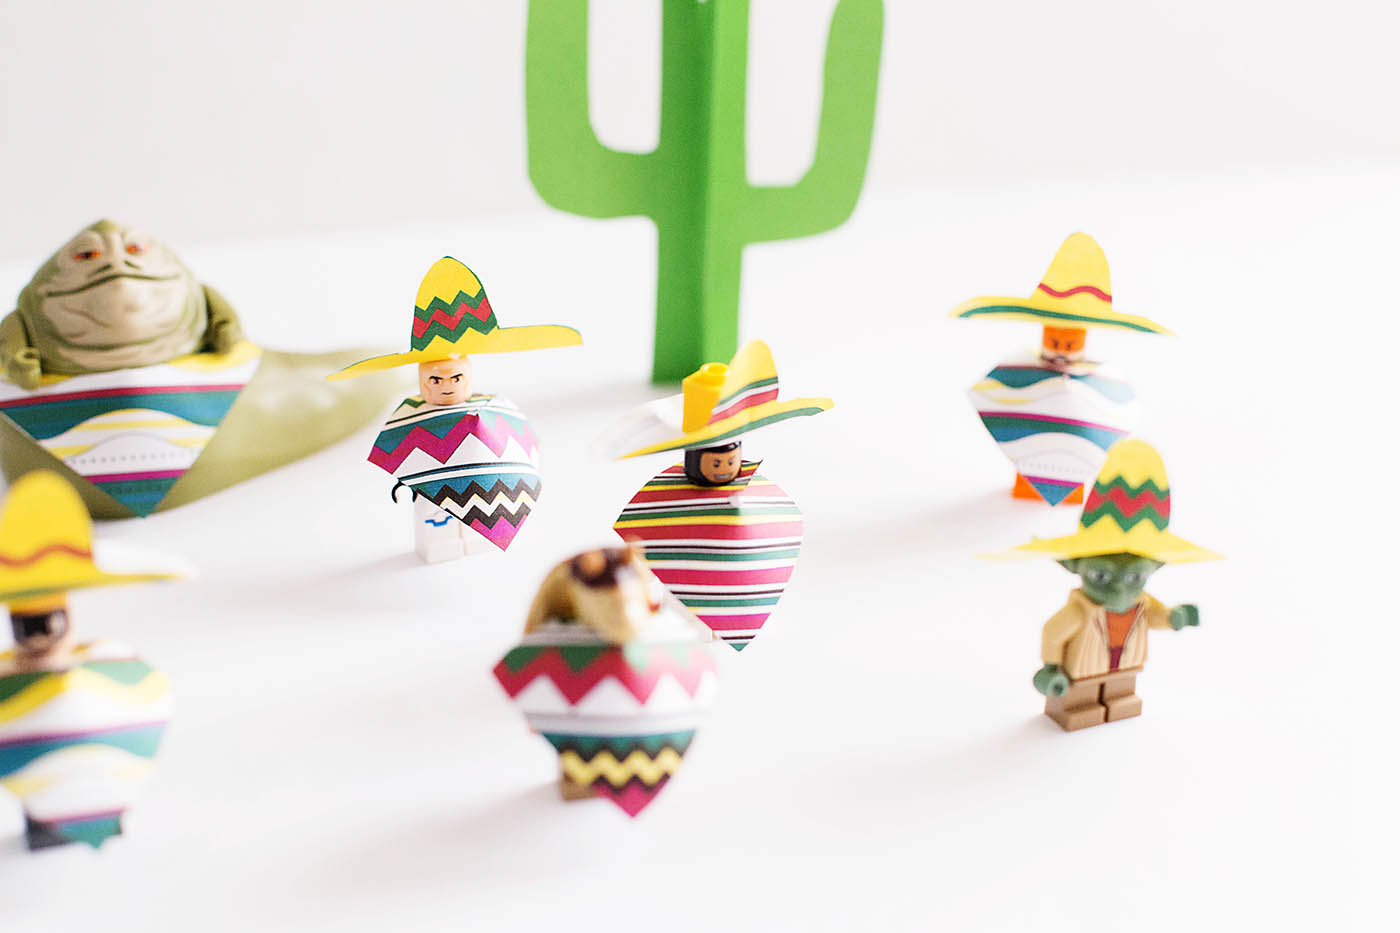 Printable sombreros and ponchos for LEGO minifigures - May the fourth AND fifth be with you!